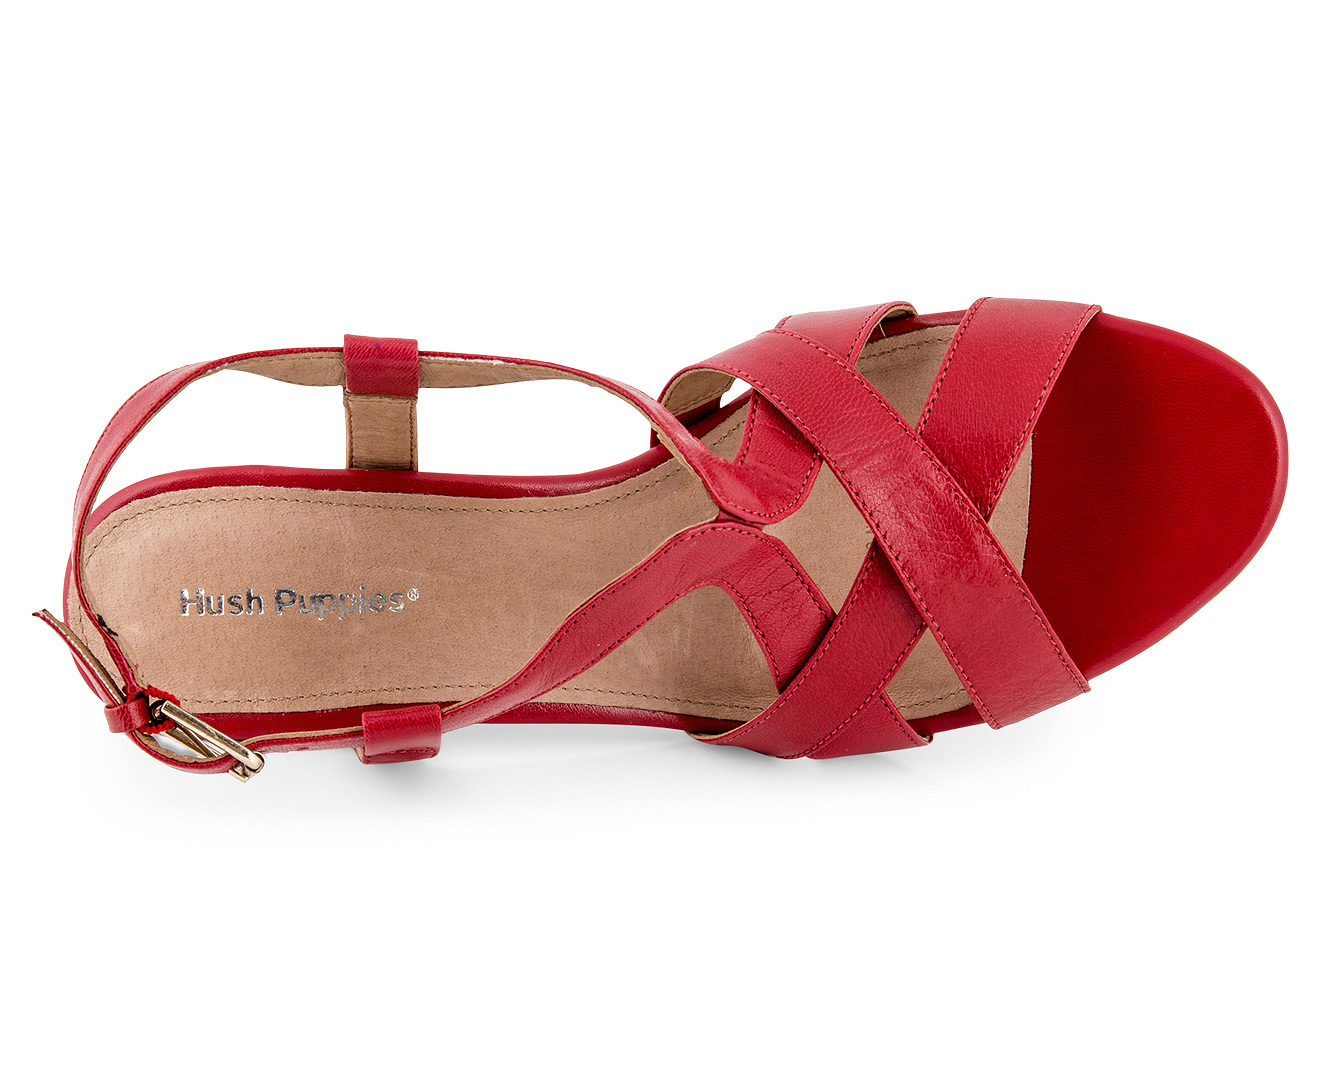 dfd479a5a Hush Puppies Women s Oracle Heels - Poppy Red